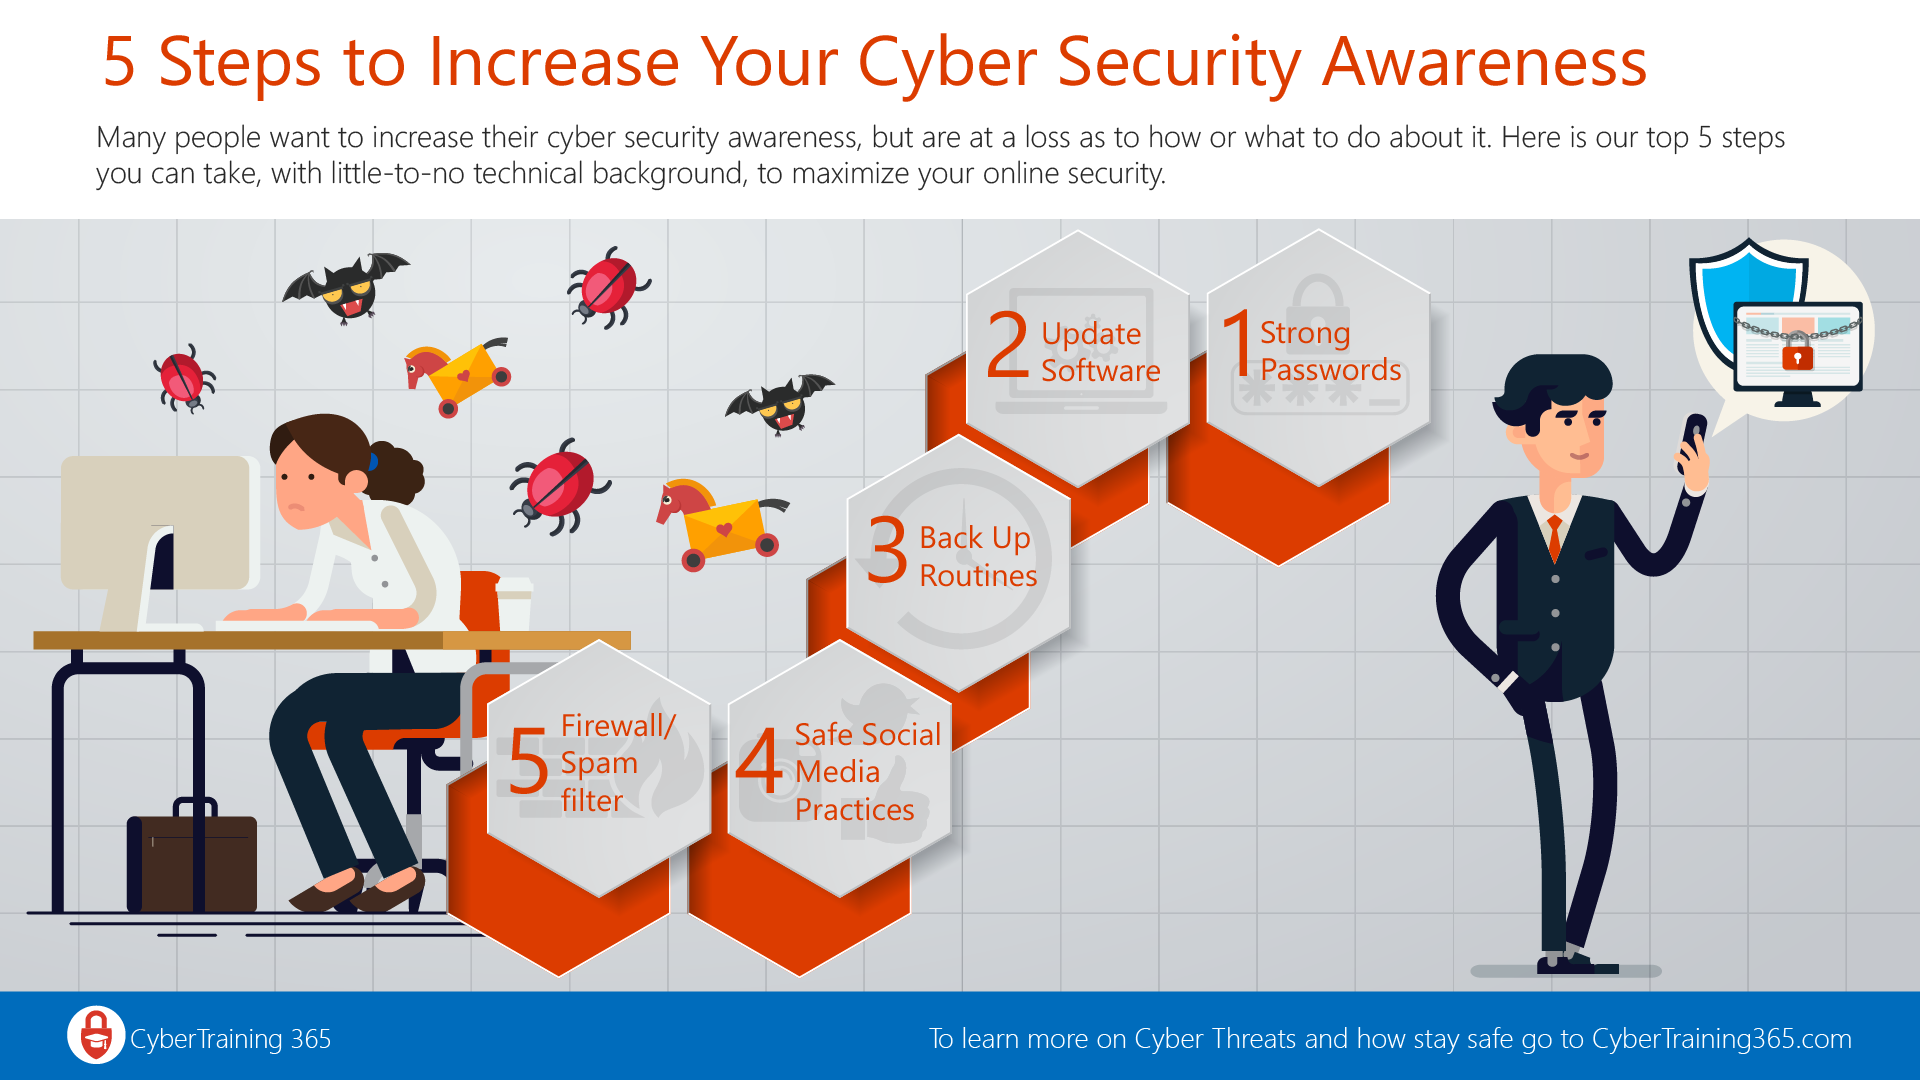 5 Steps To Increase Your Cyber Security Awareness 01